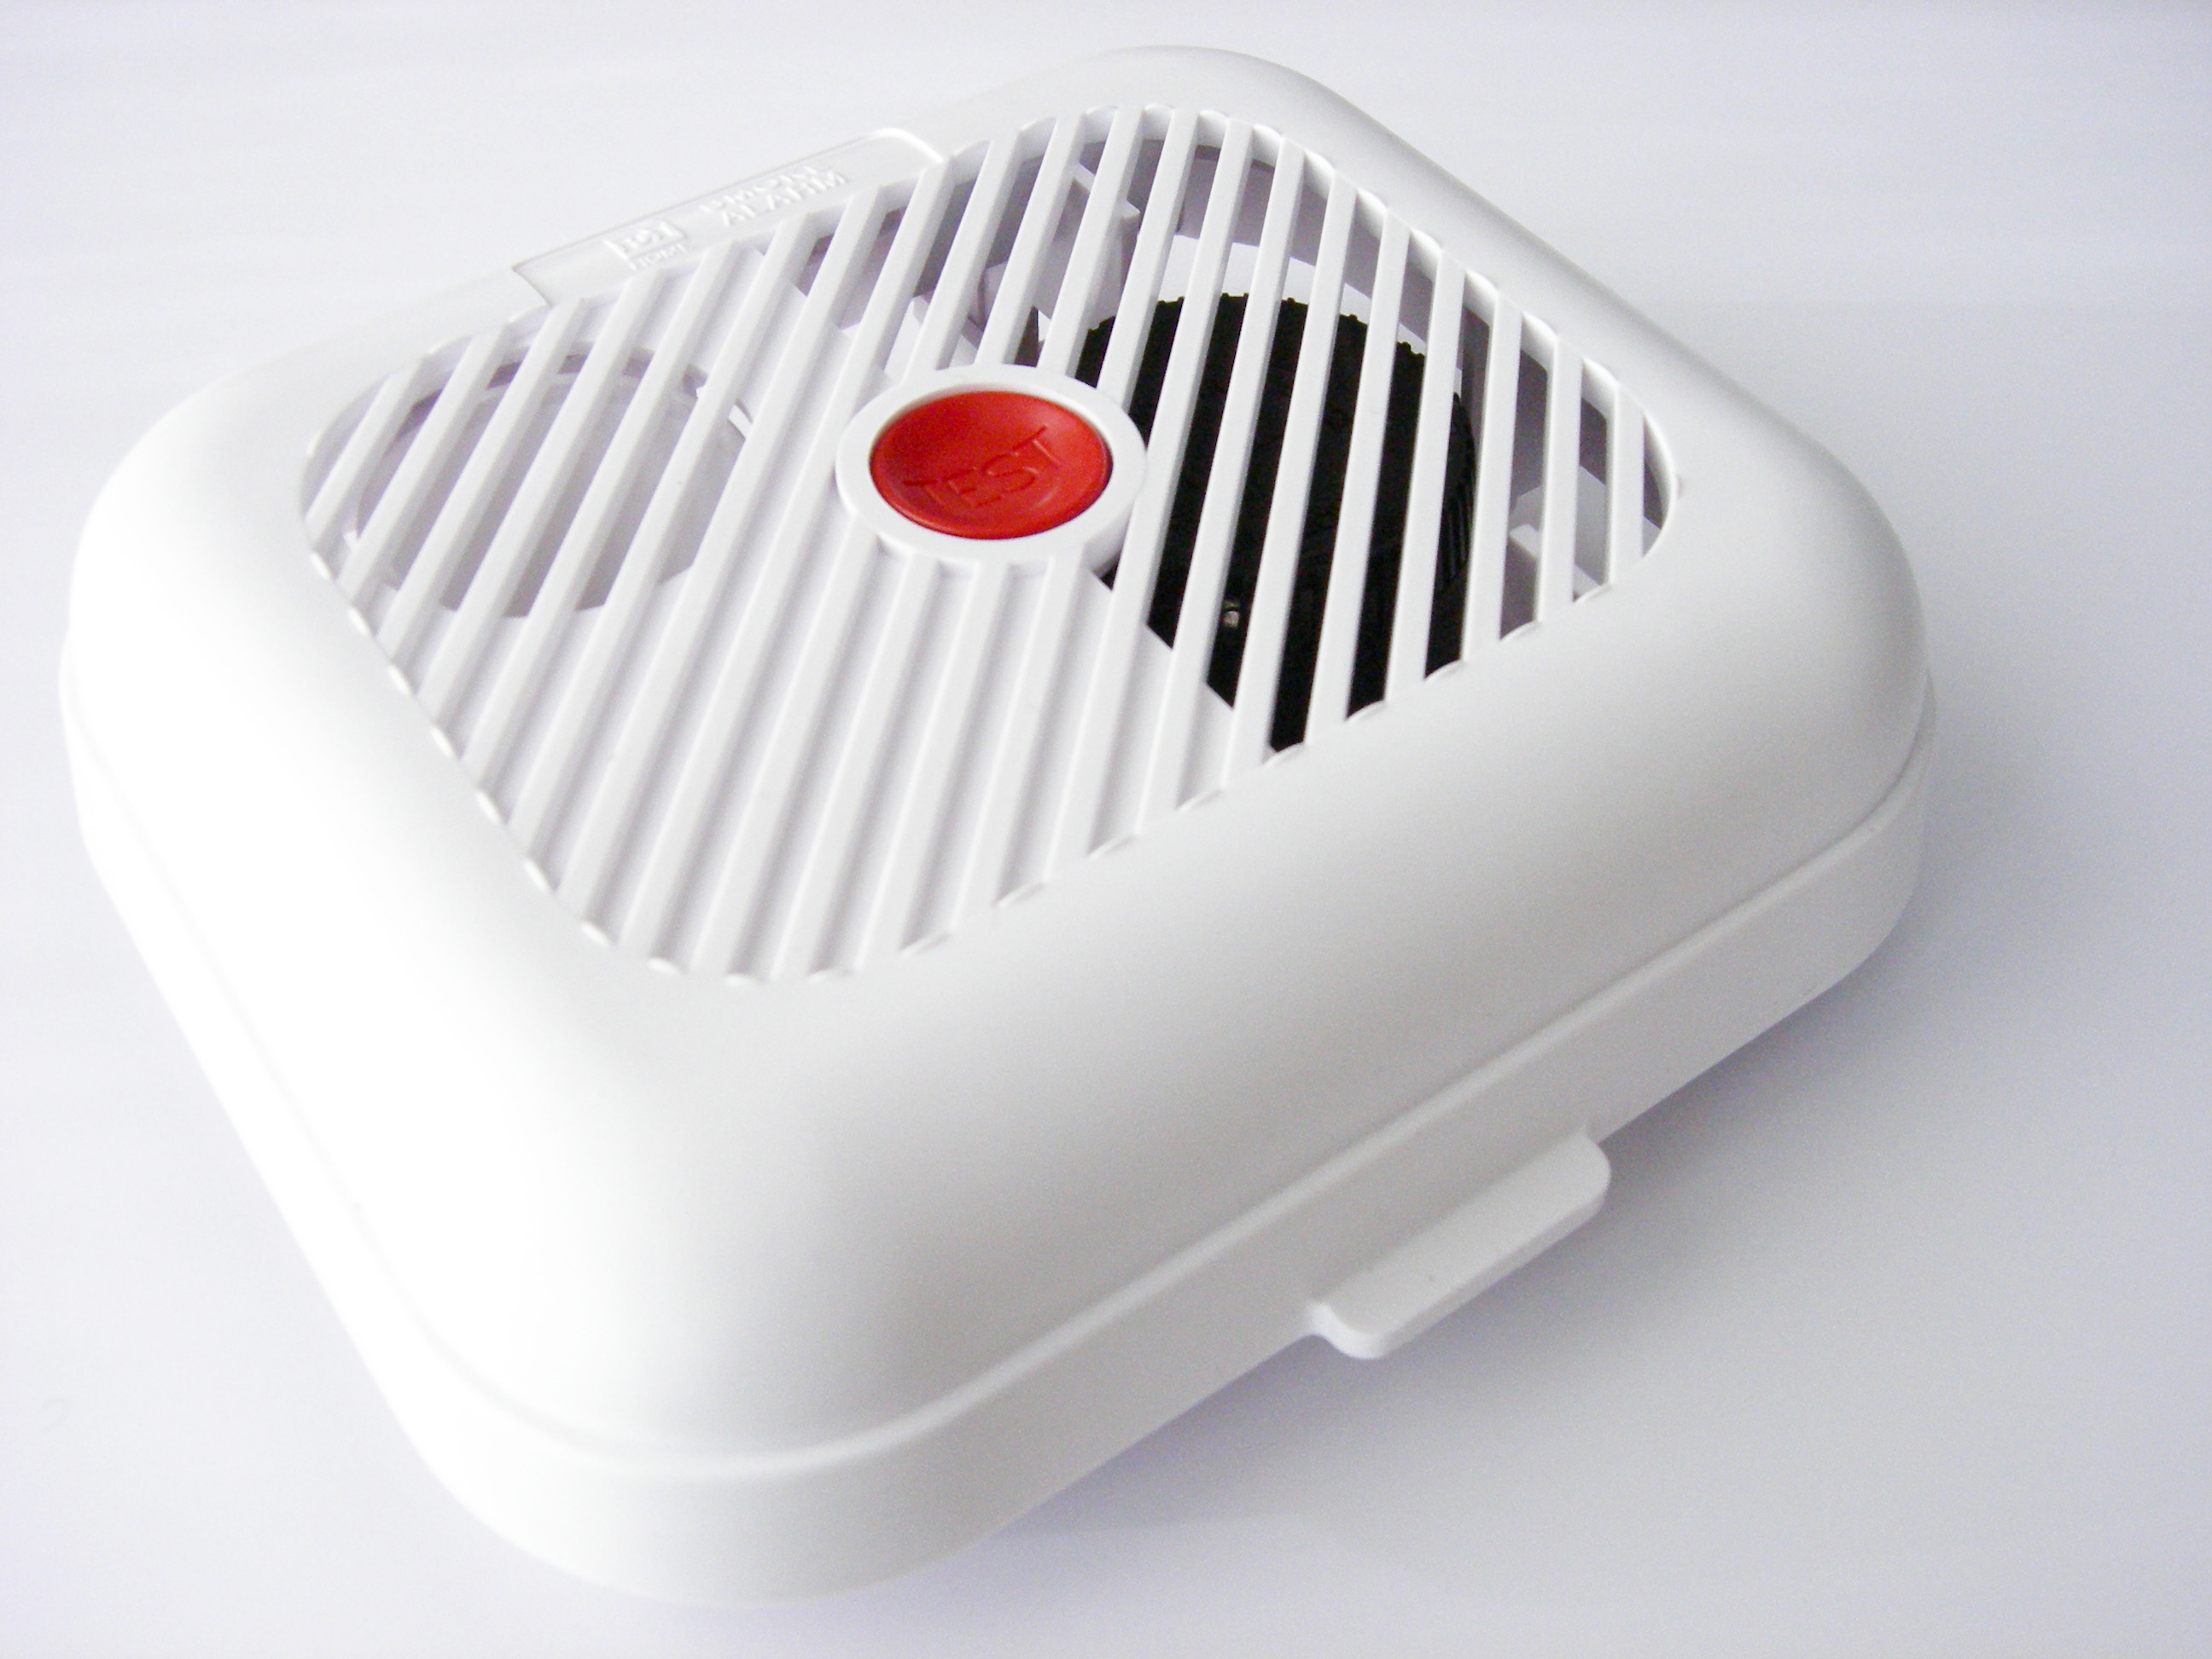 White smoke alarm with red button